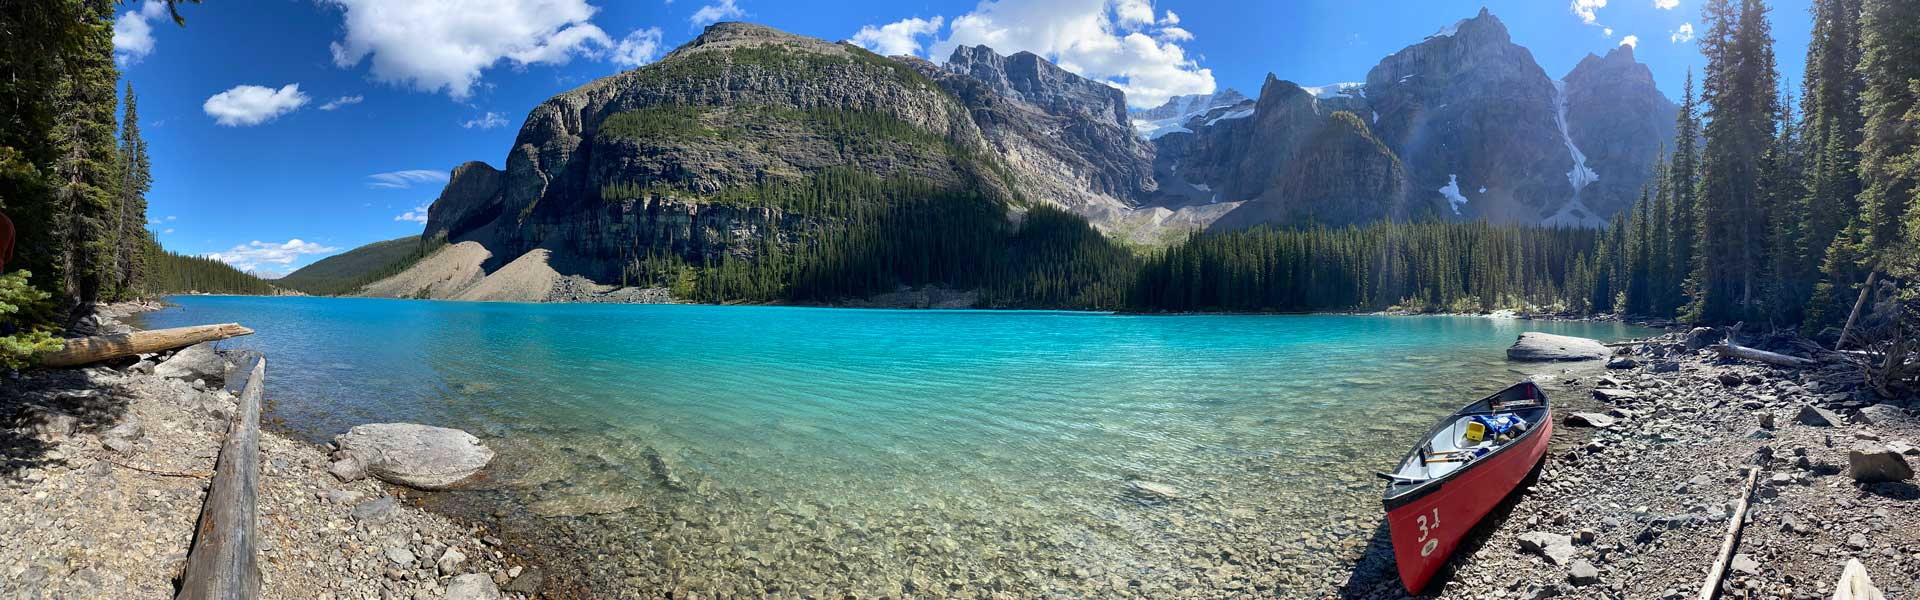 Western Canada Rail Vacations | Moraine Lake